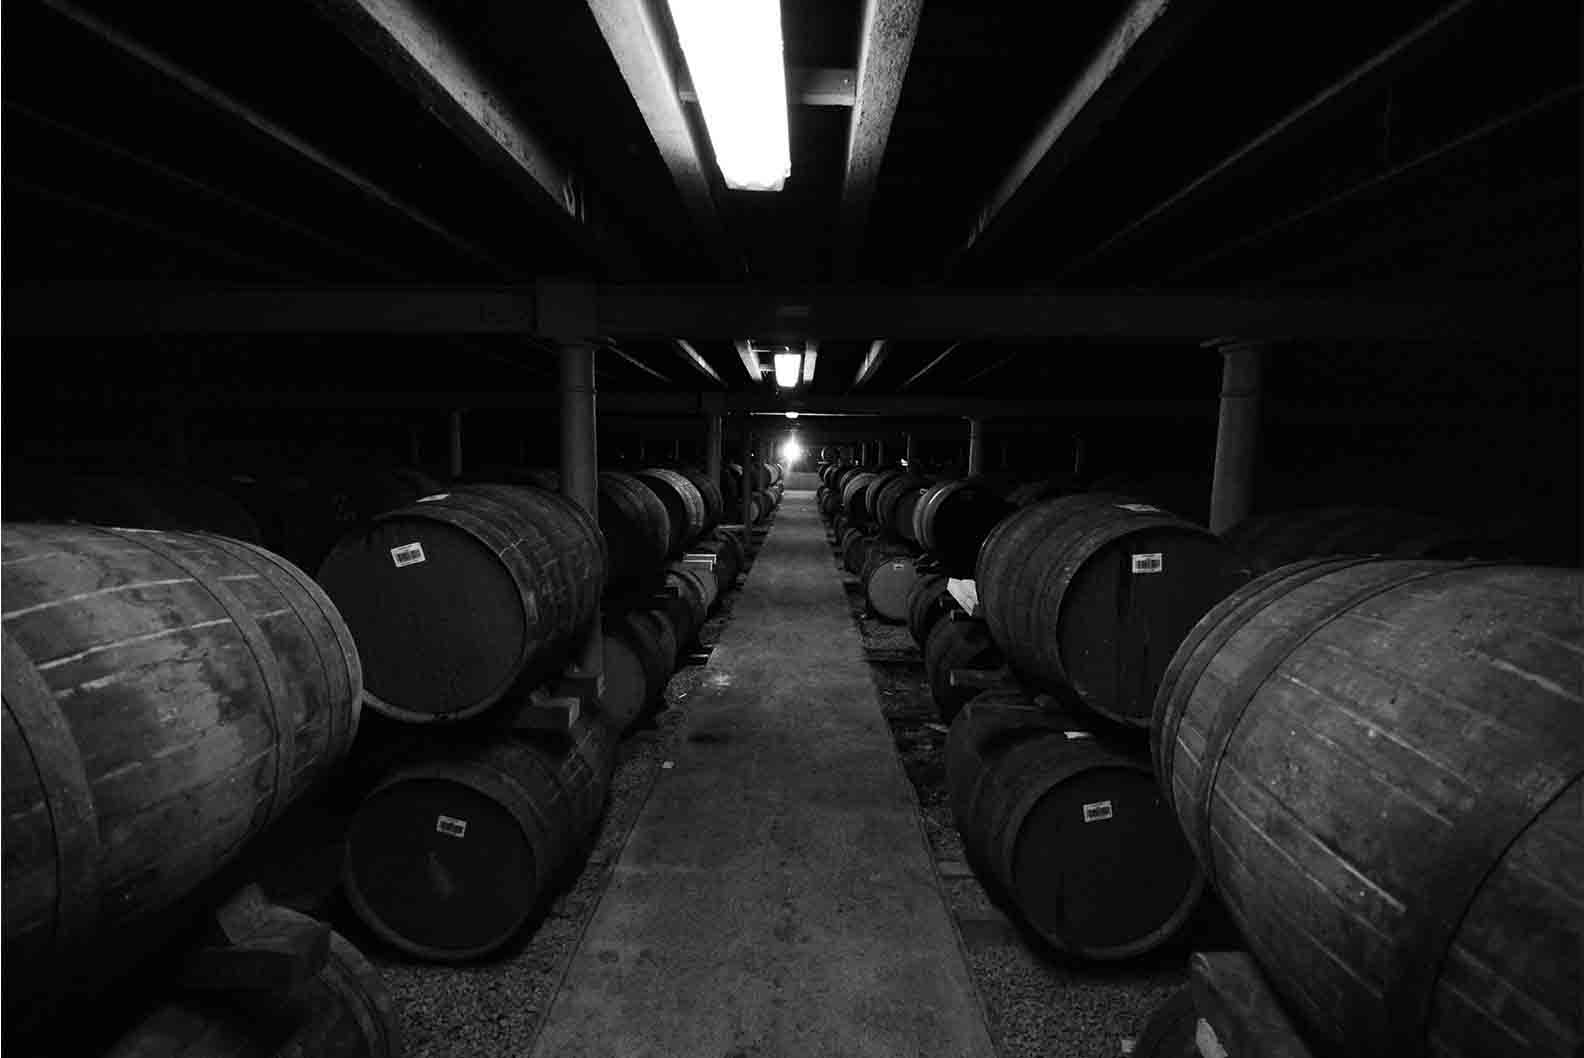 Cellar of whisky casks